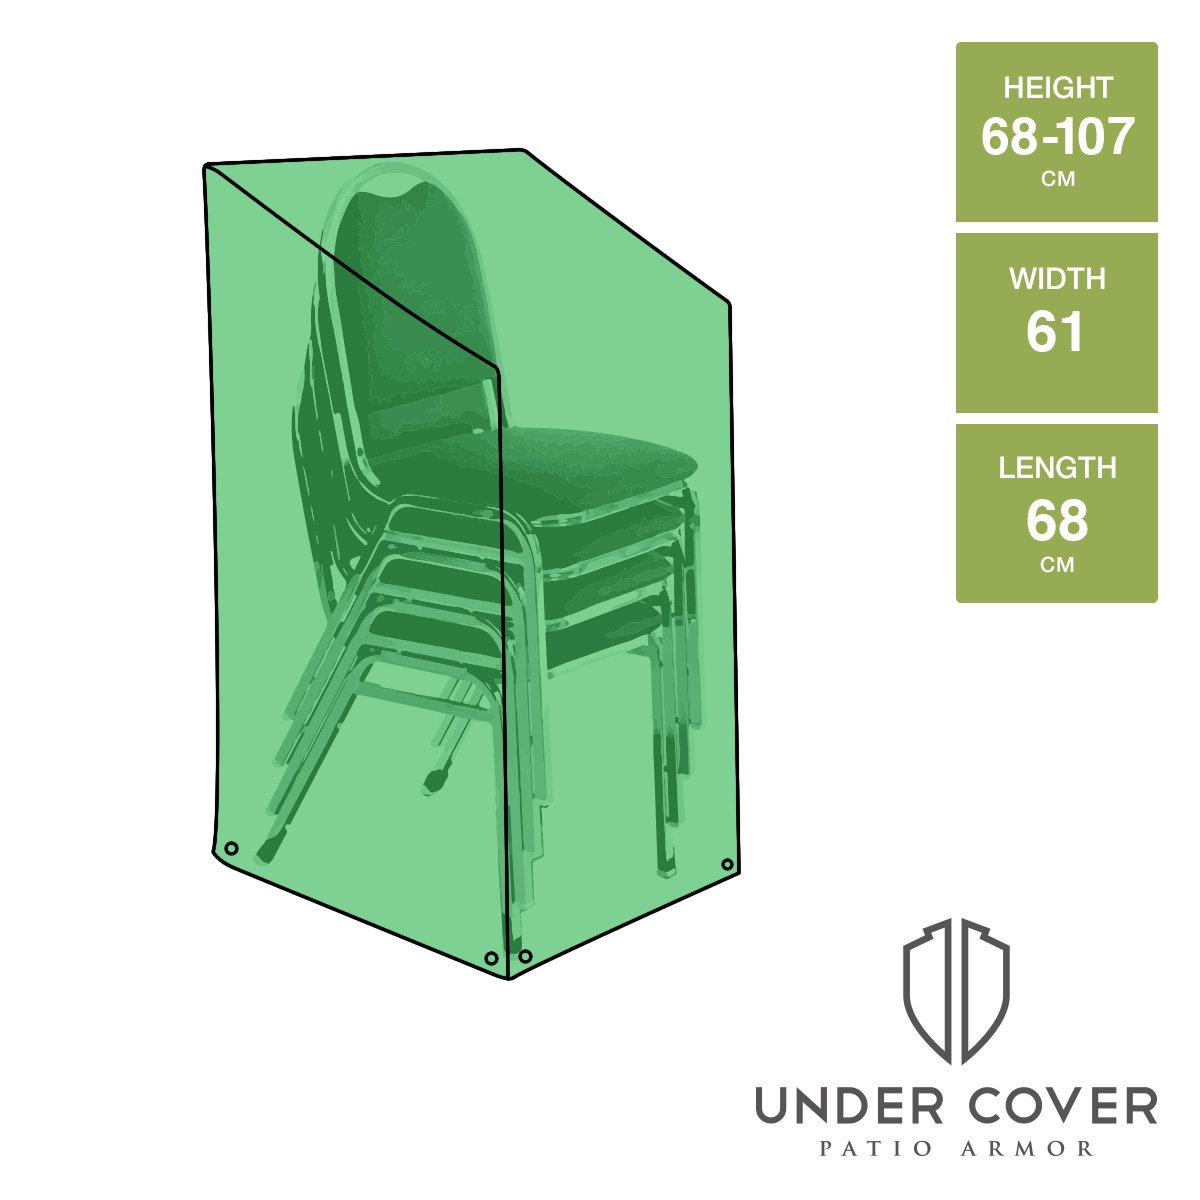 Charming UNDER COVER PATIO ARMOR Stacking/Reclining Chair Cover: Amazon.co.uk:  Garden U0026 Outdoors